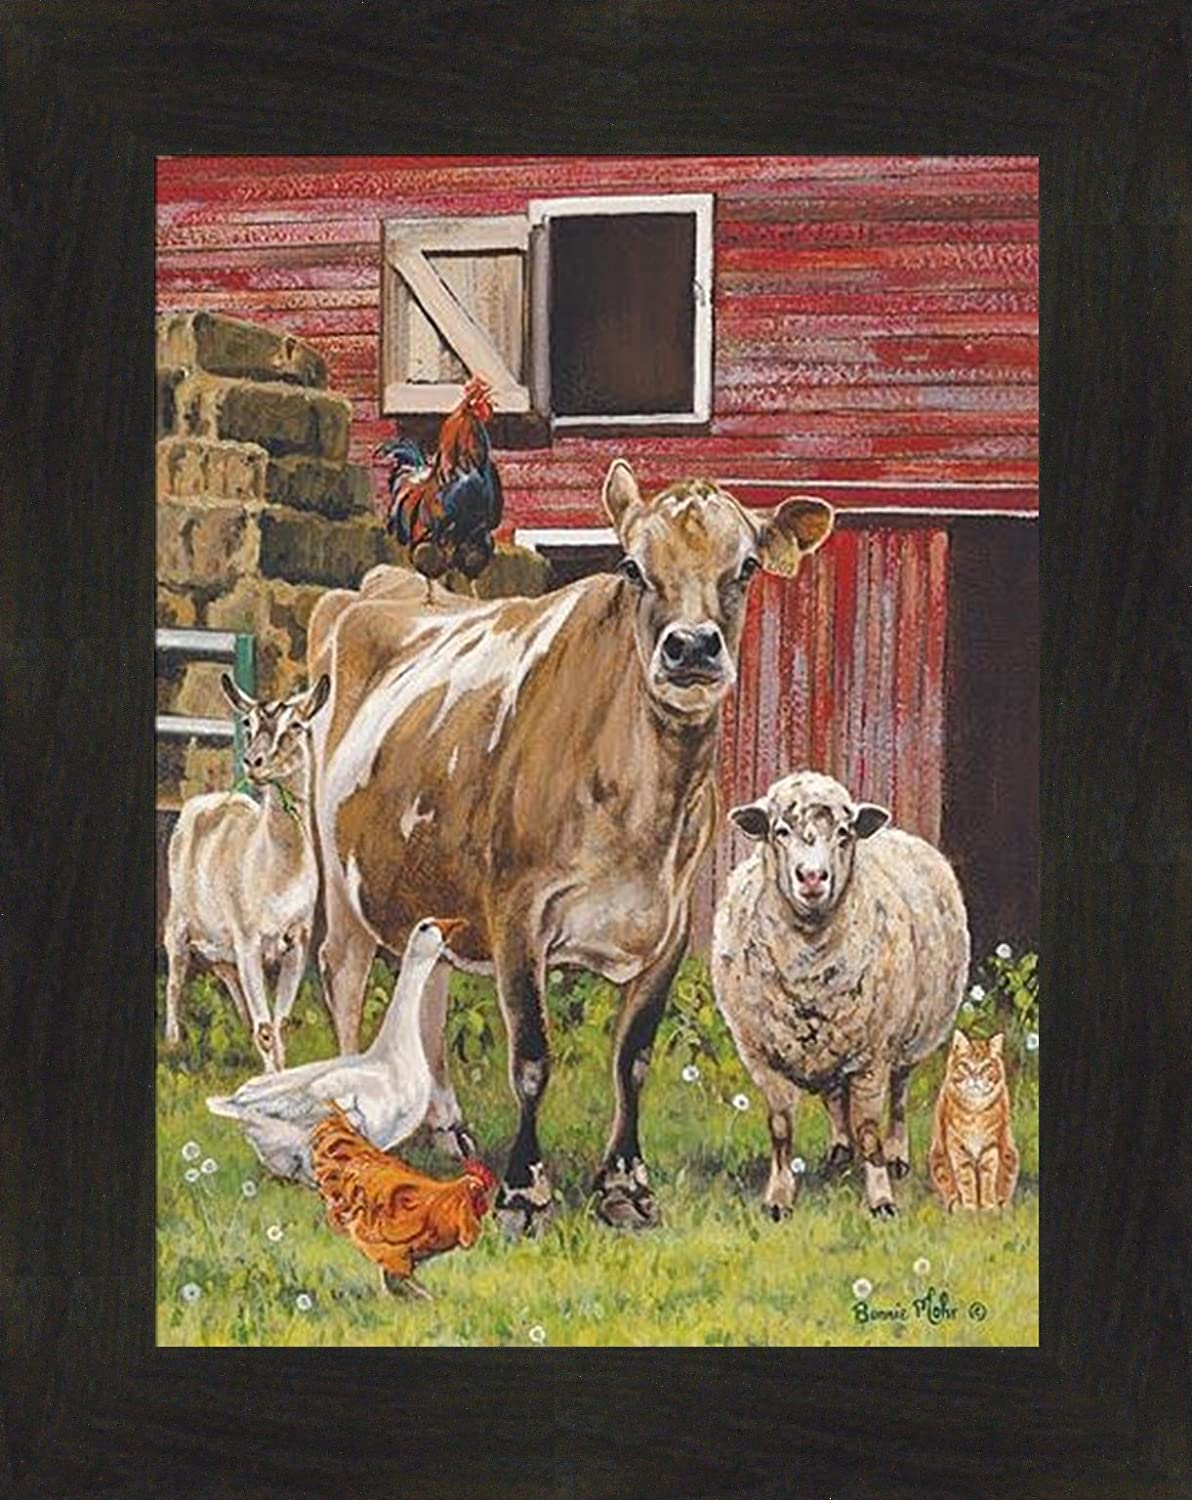 Barnyardigans by Bonnie Mohr 16x20 Farm Animals Cow Sheep Goat Chicken Goose Country Art Print Wall Décor Framed Picture (2